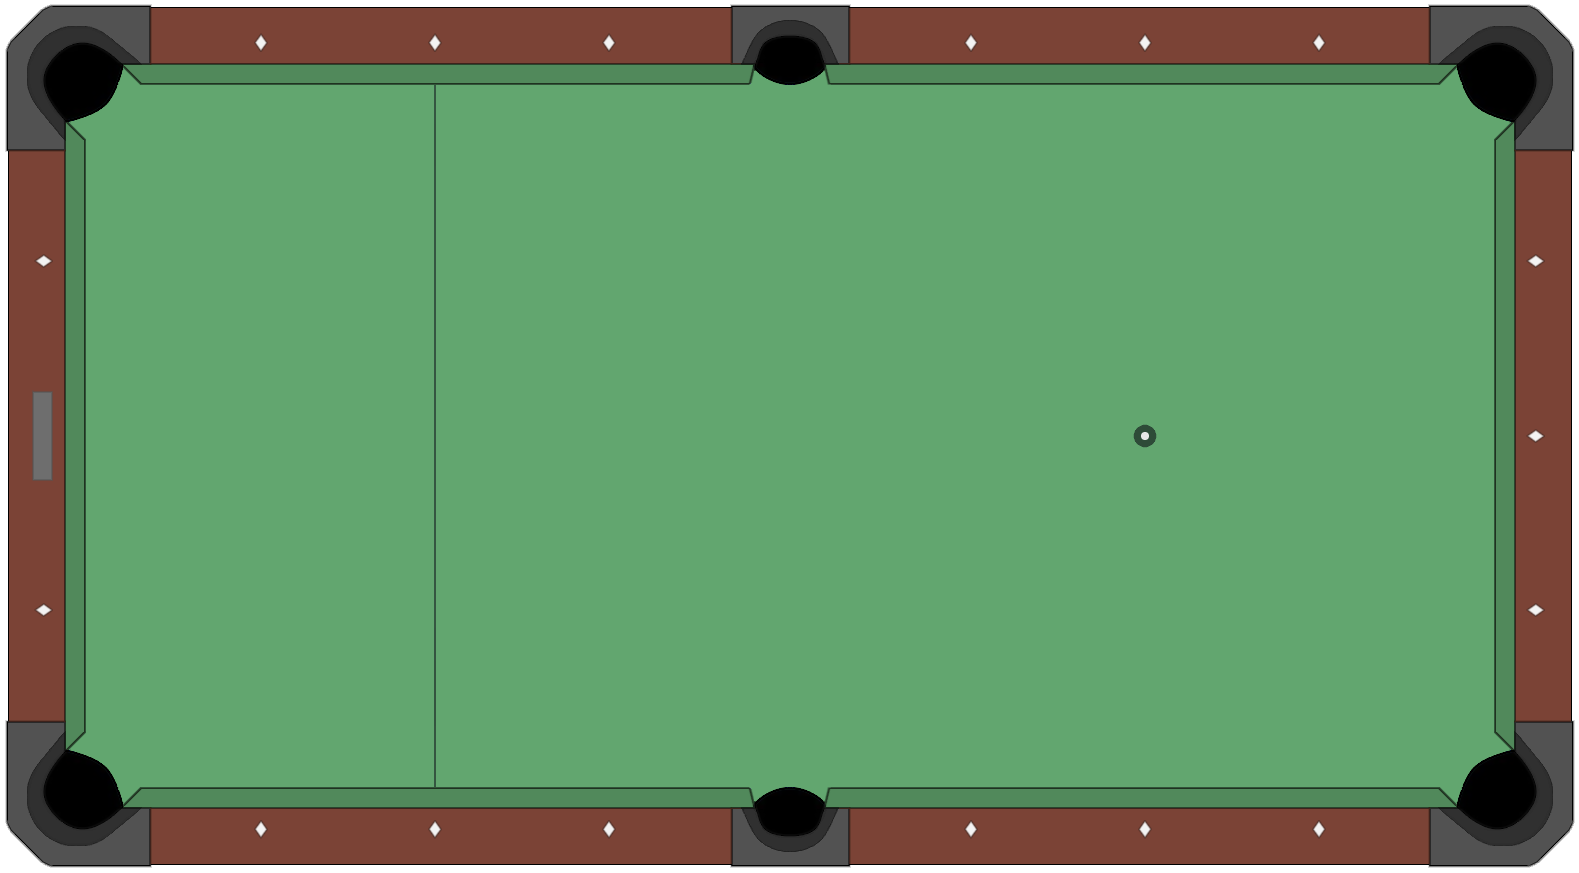 American Style Pool Table Diagram Empty Png 1579 873 Pool Tables For Sale Pool Table Bumper Pool